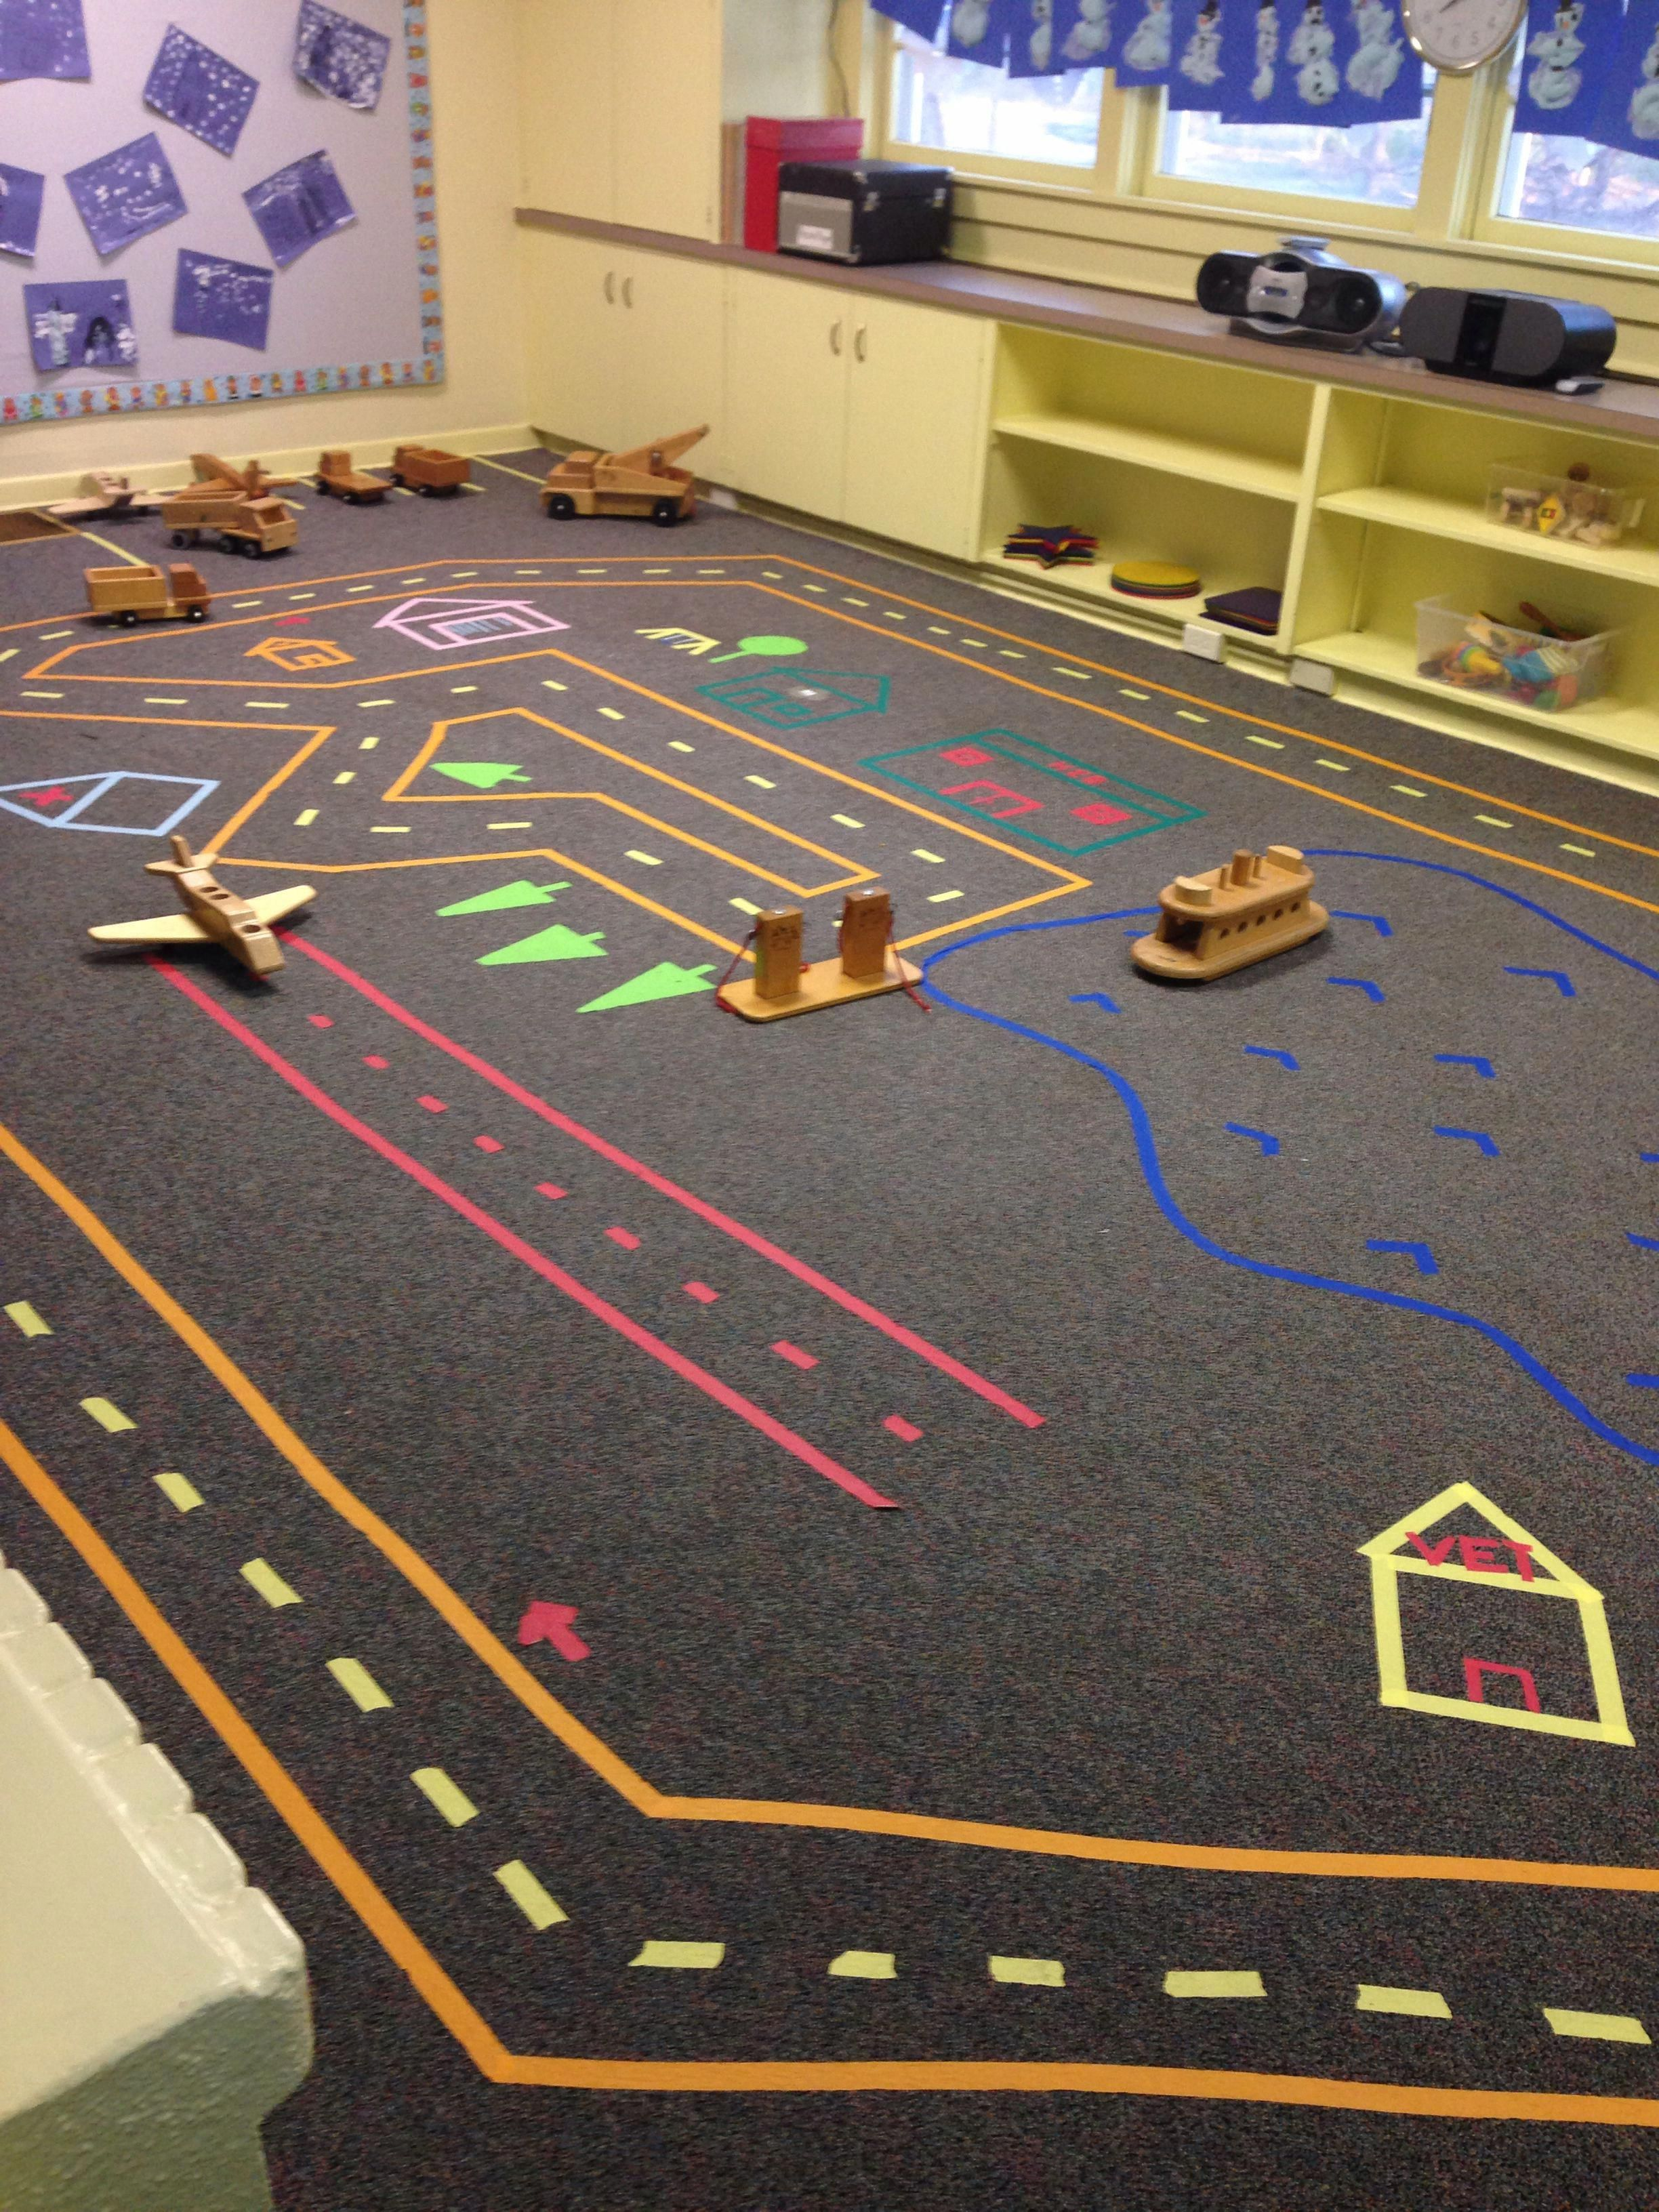 A town of tape. hobbytown Hobby town, Kids rugs, Hobby